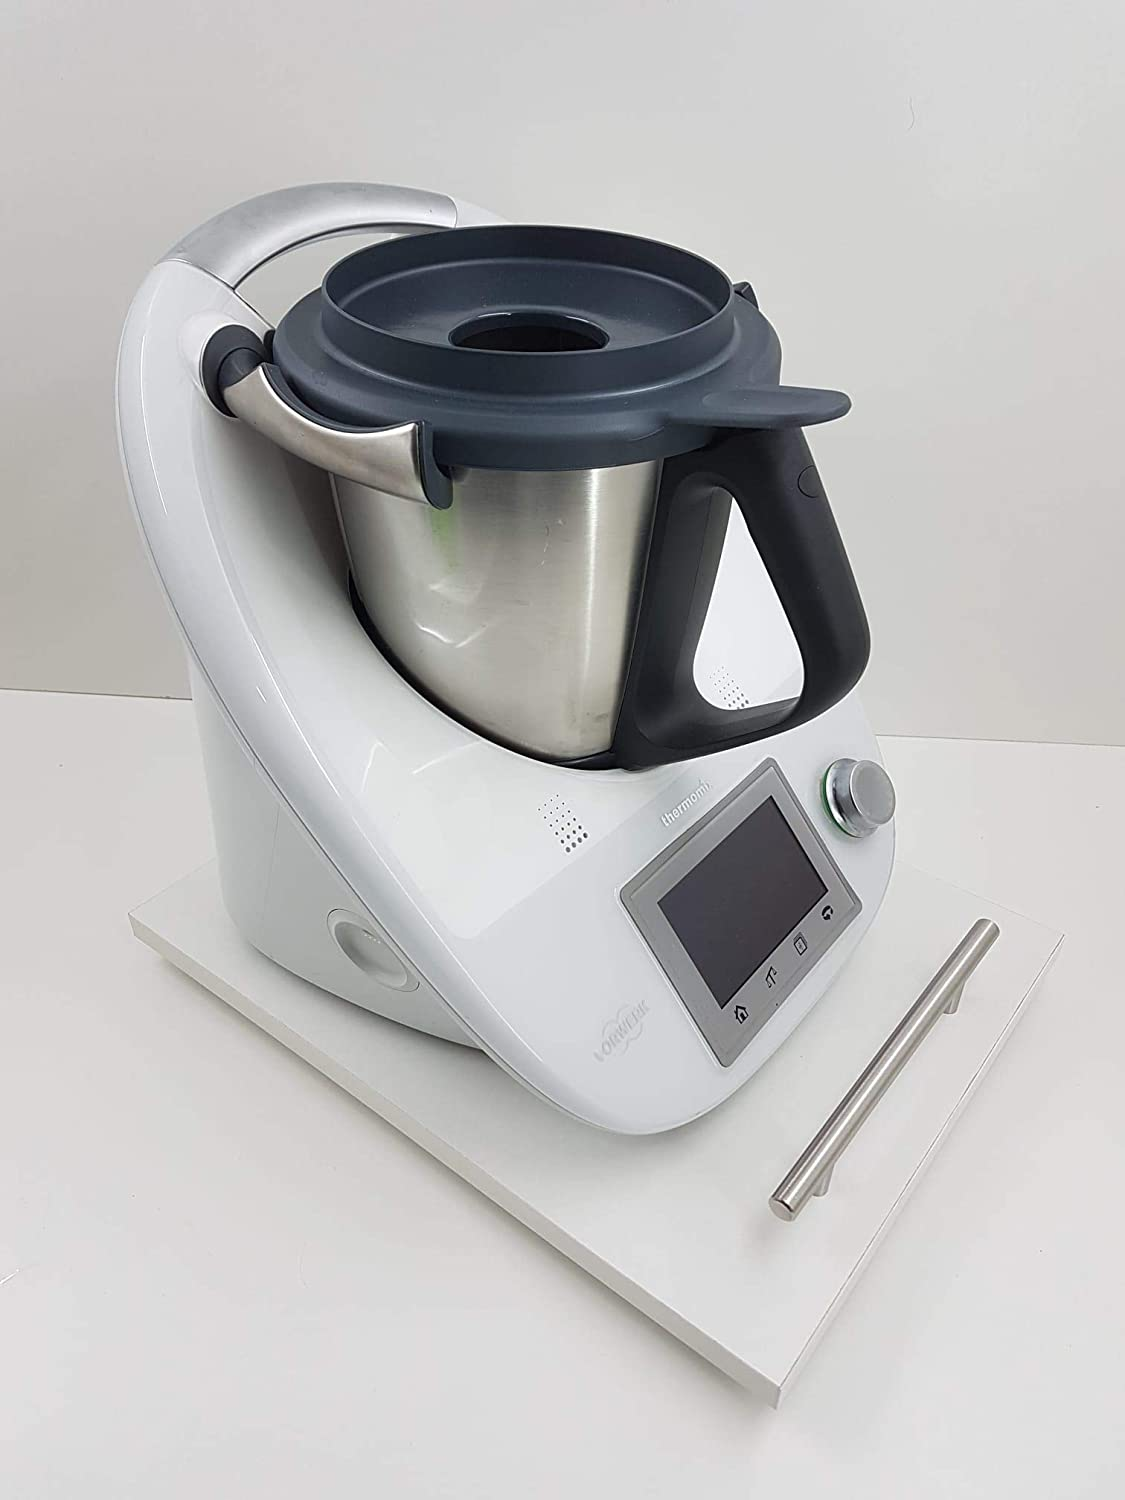 Tabla, Plataforma, Base Deslizante para THERMOMIX TM6 TM5 TM31 ...